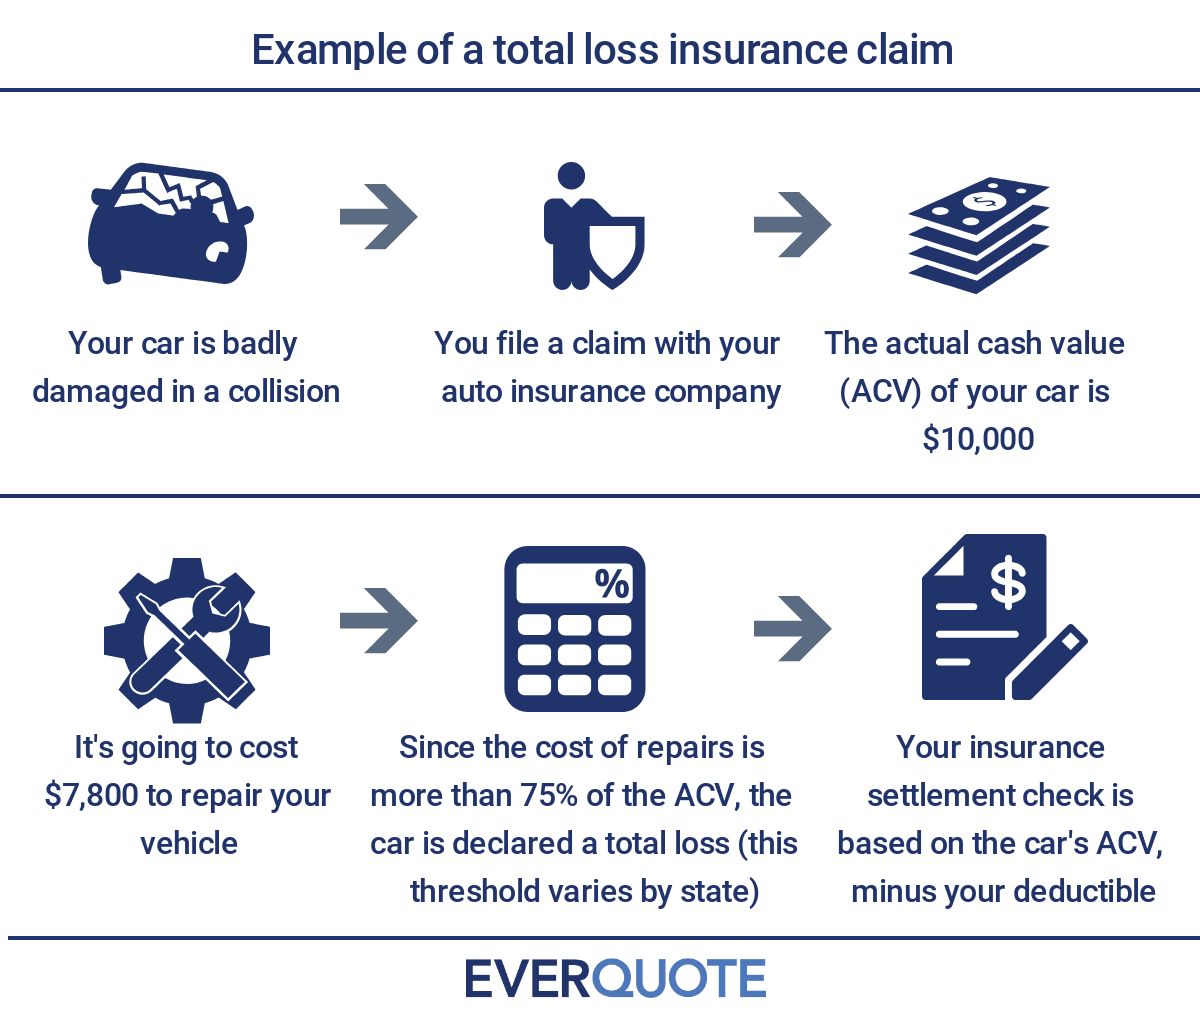 Example of a total loss insurance claim